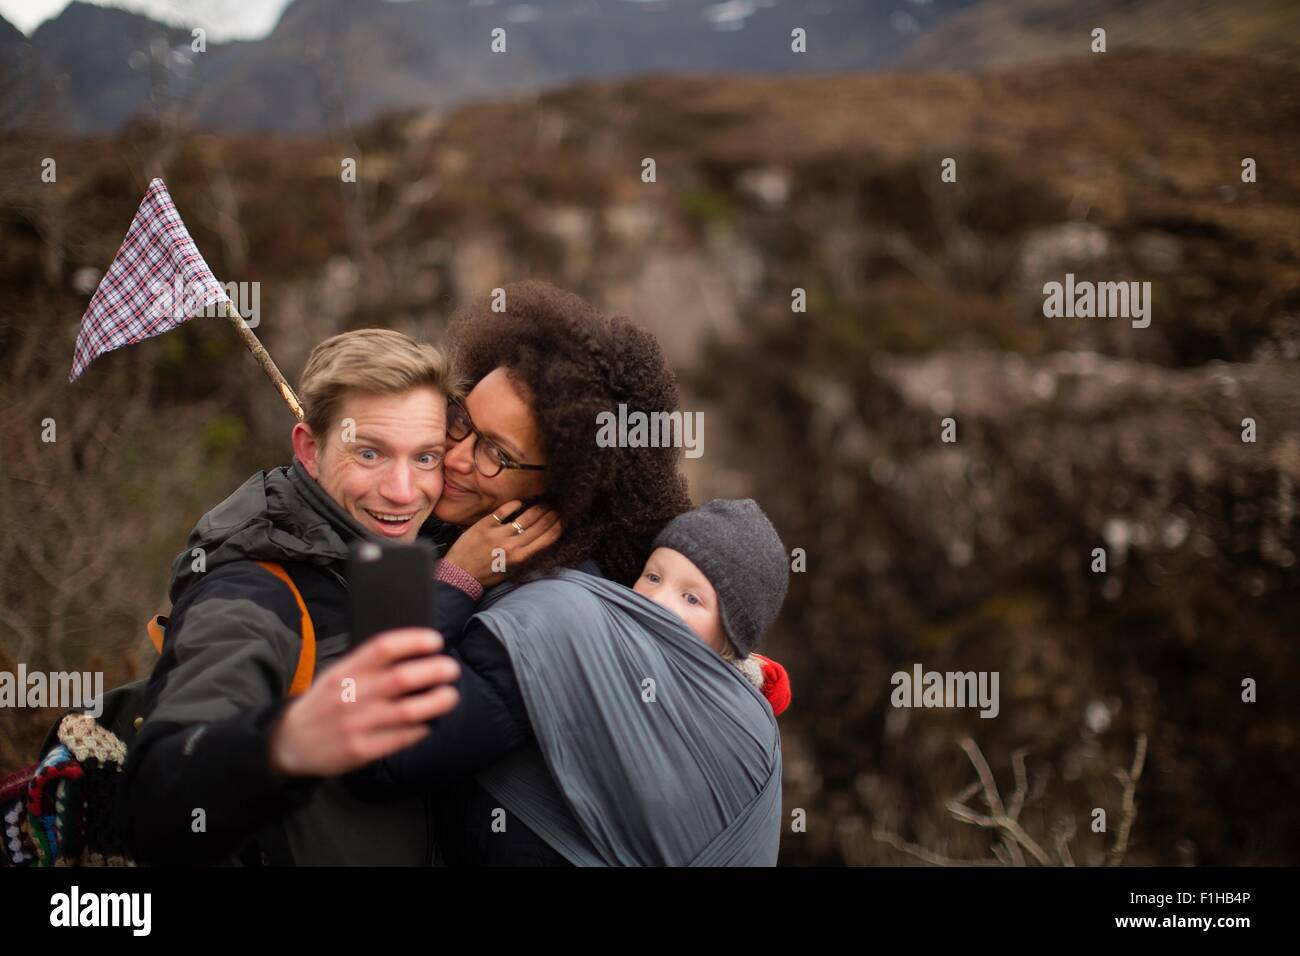 Family photographing themselves on hike - Stock Image